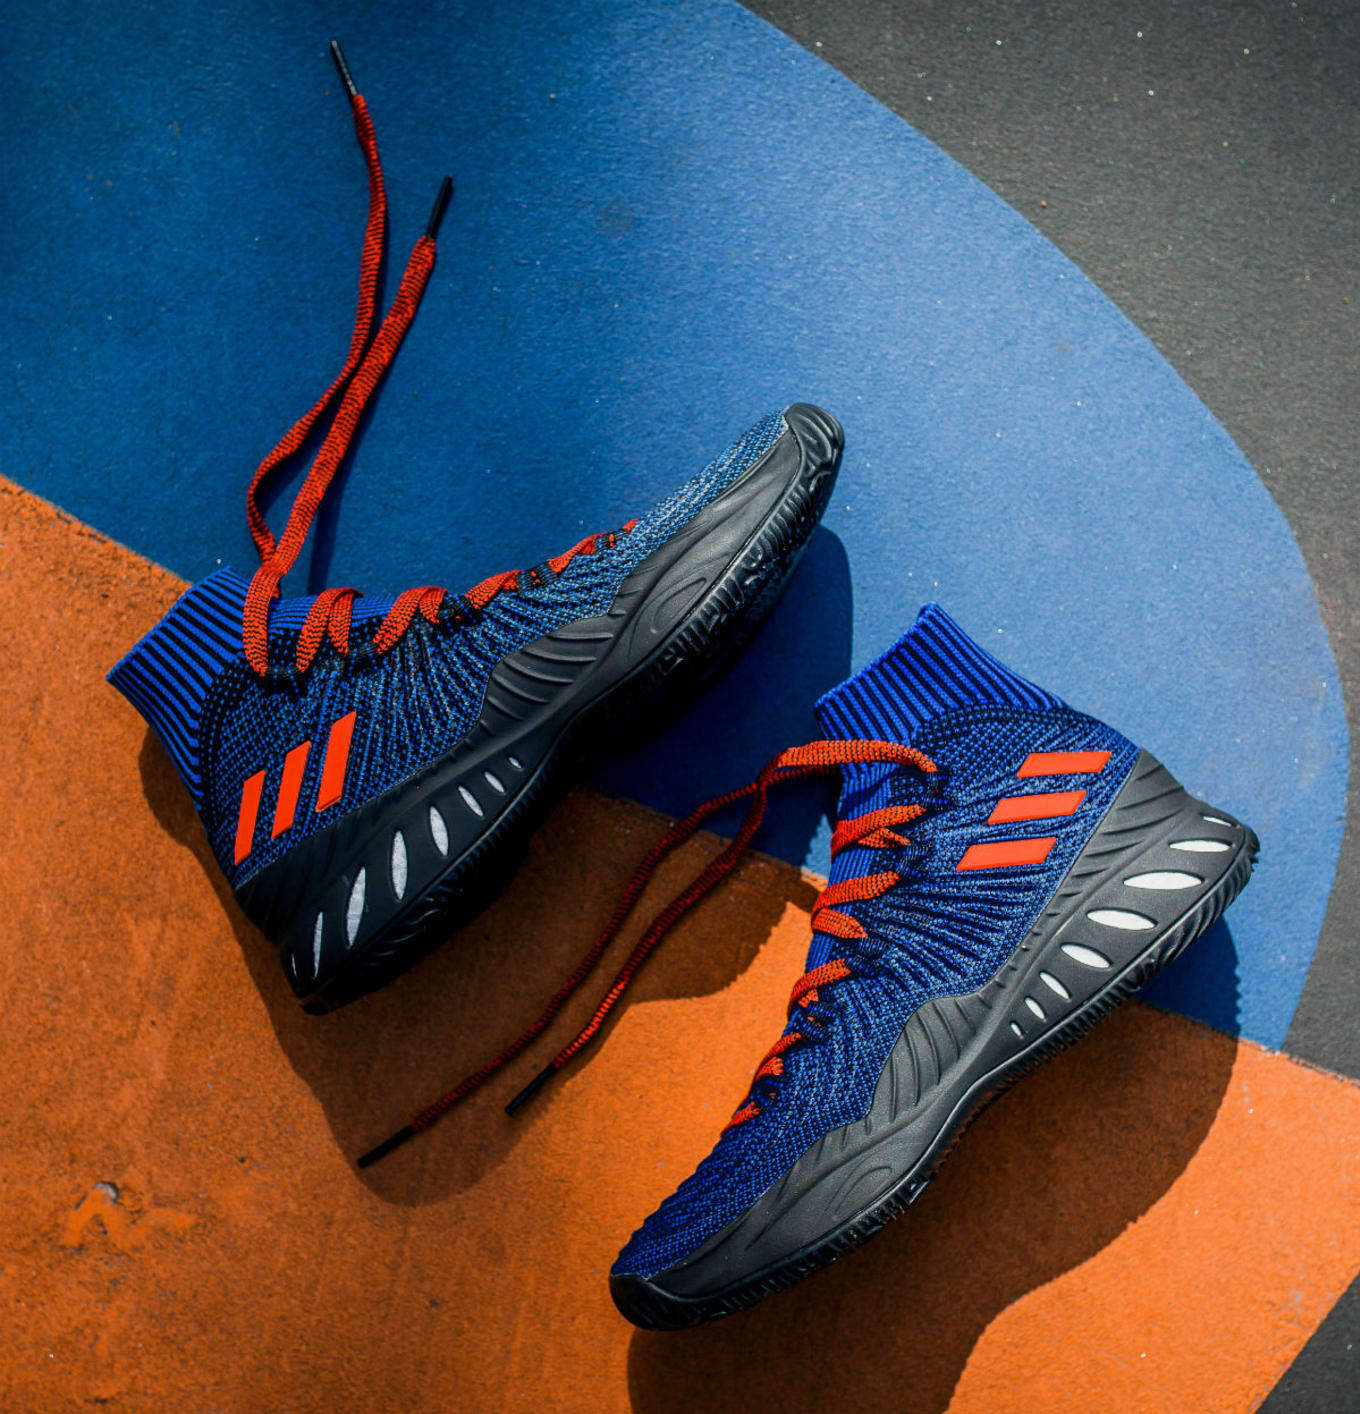 baff5e0a2b03 Limited Edition Adidas Crazy Explosive launch at Packer Shoes.